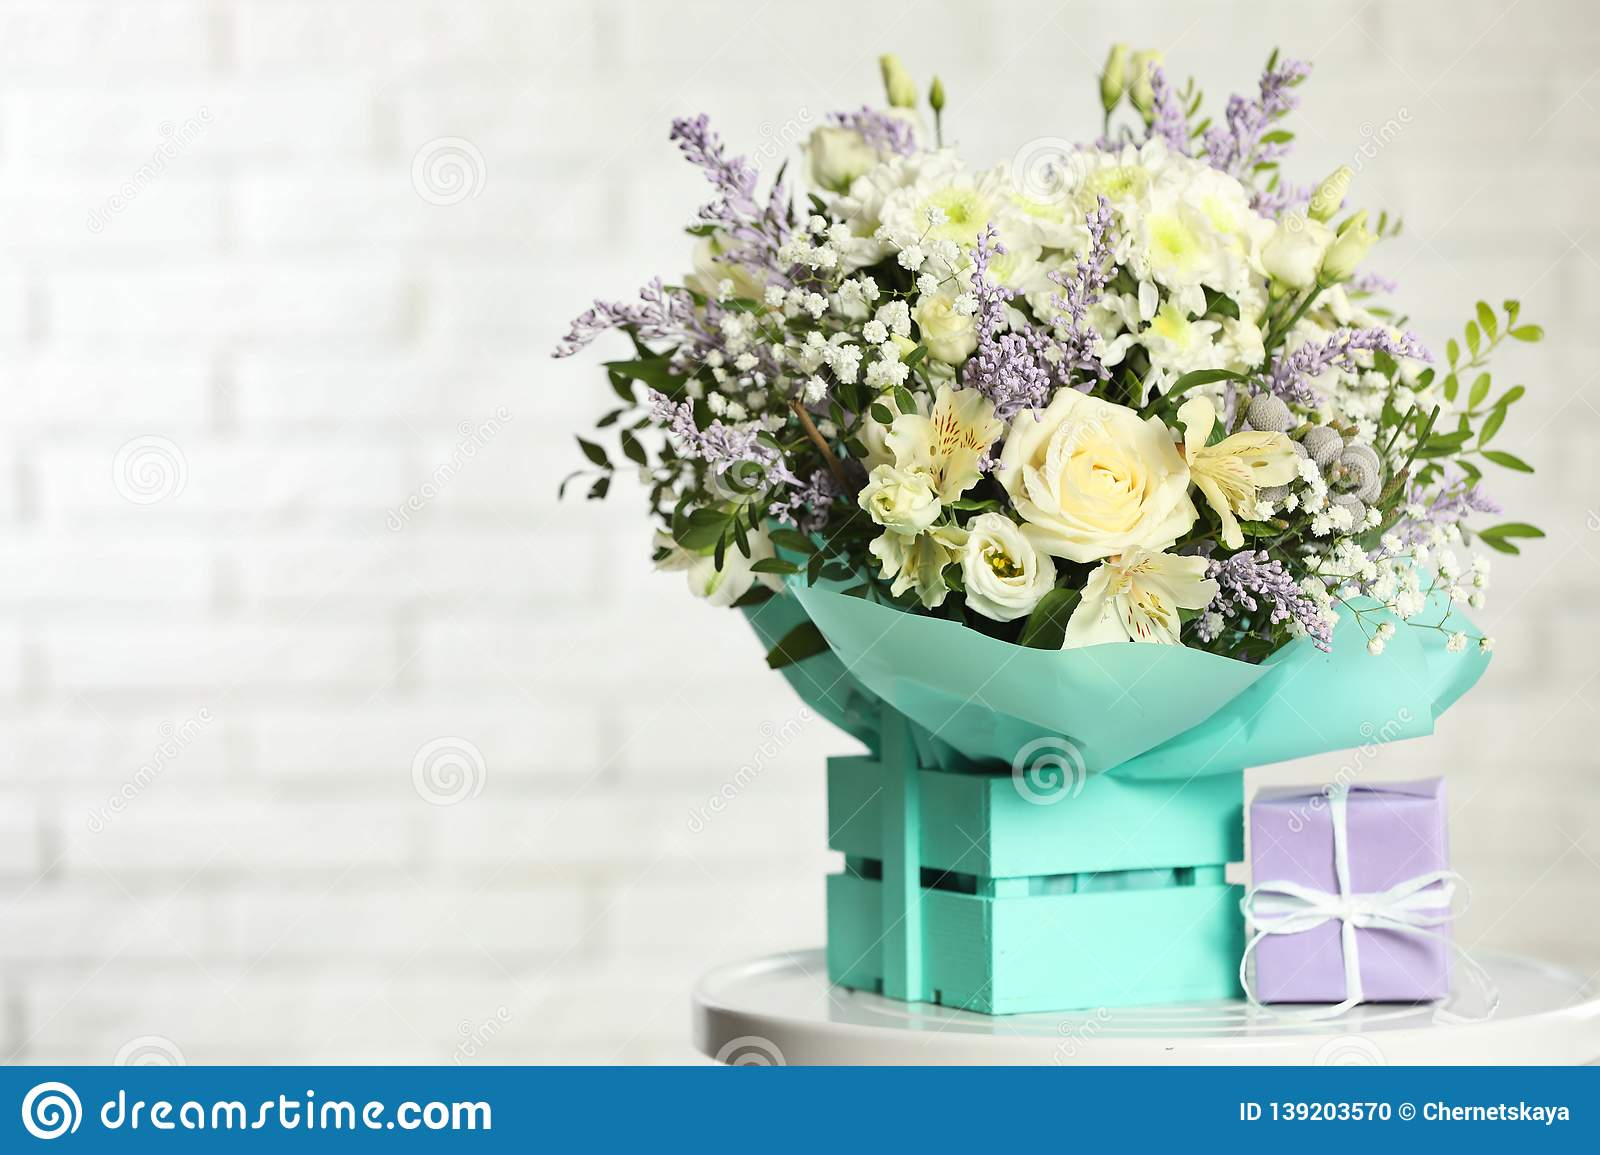 Beautiful bouquet of flowers and gift box on table against light background.